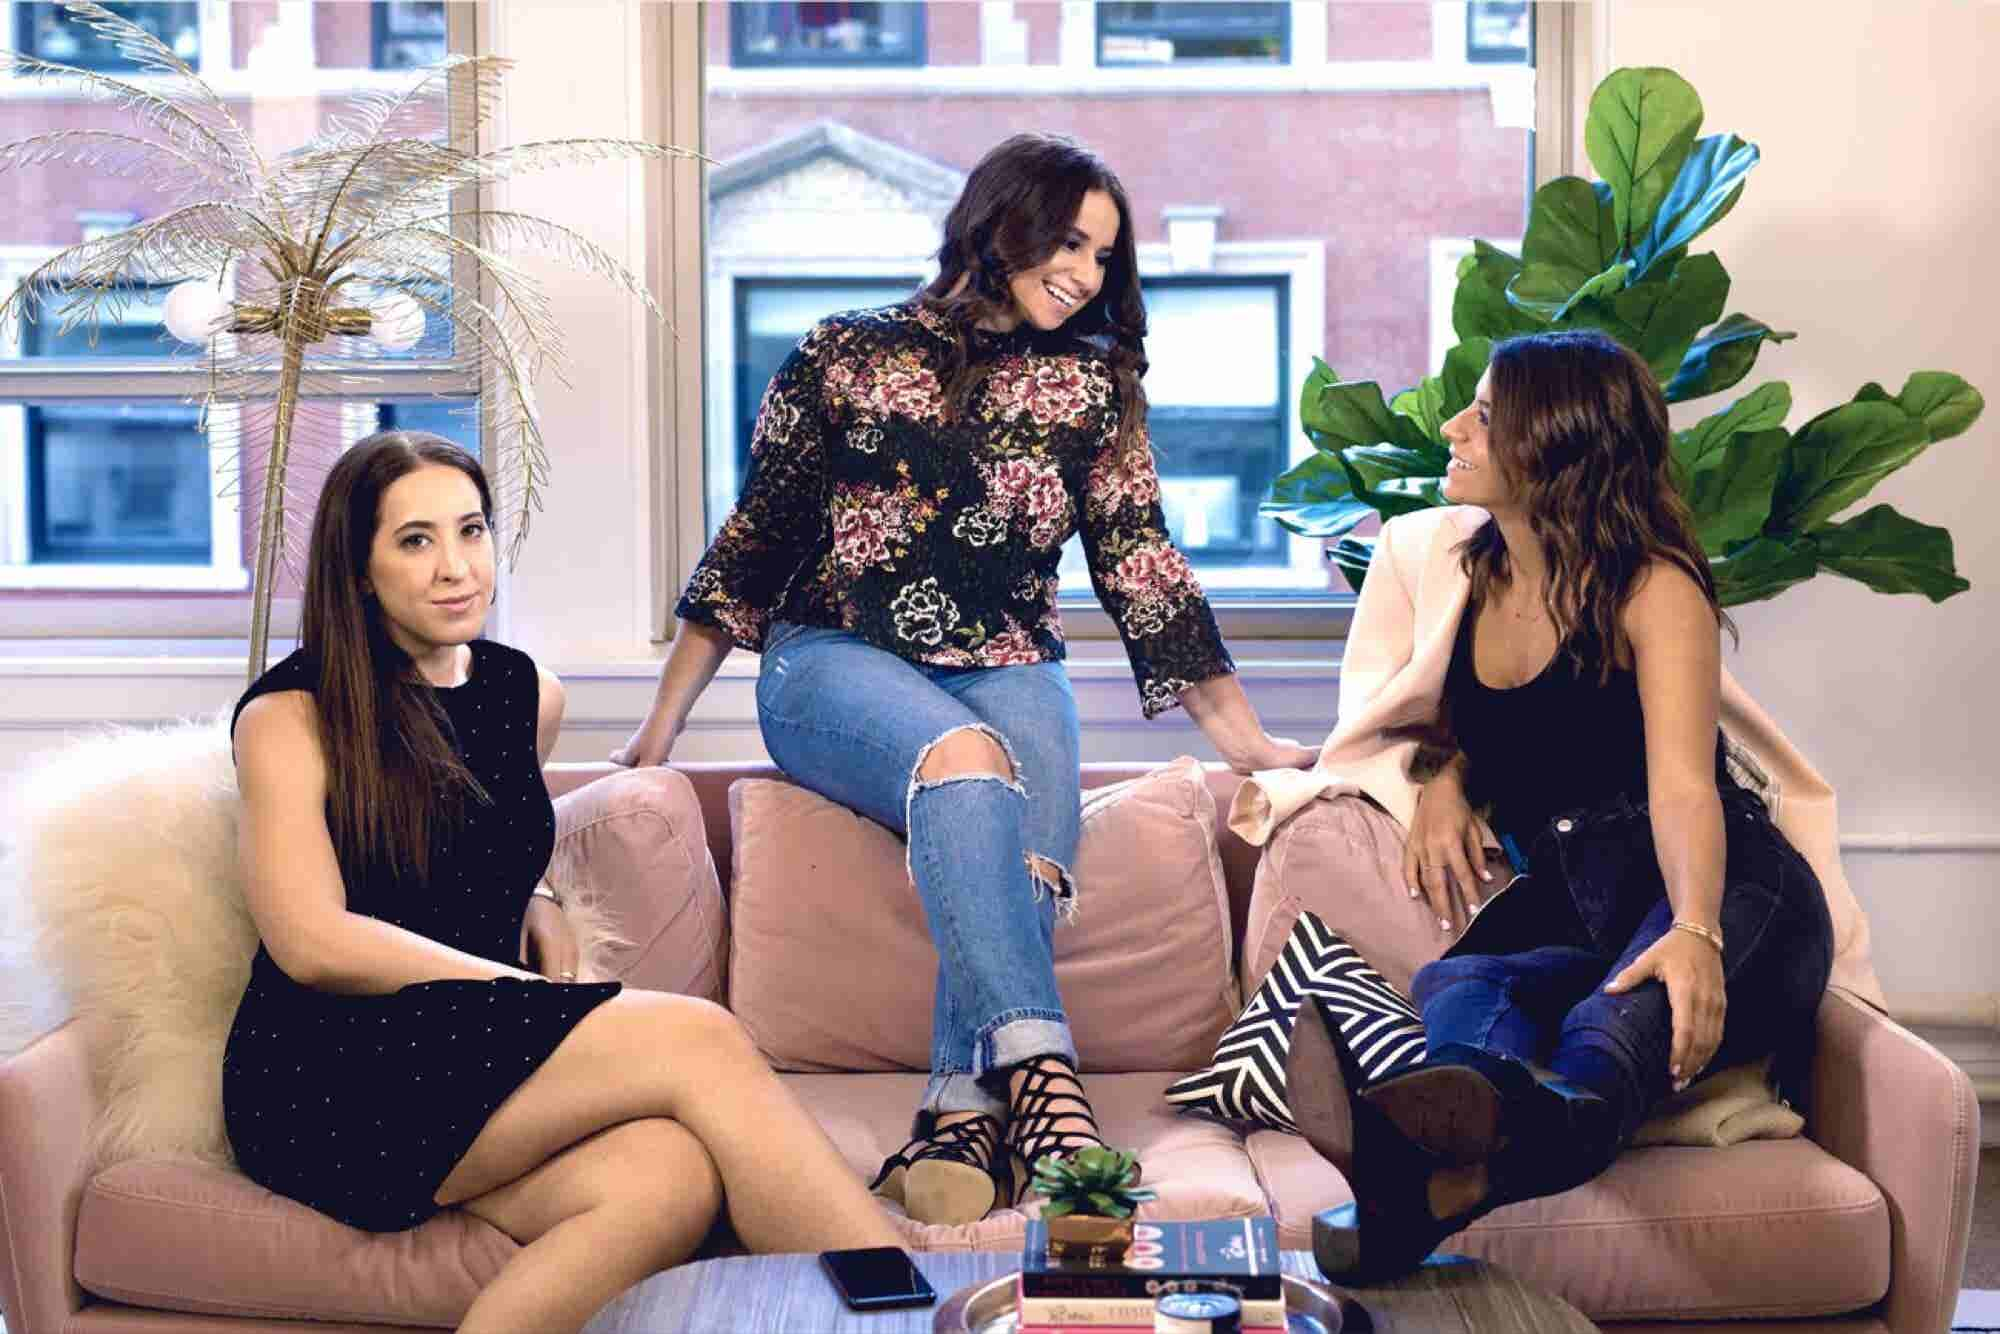 How 3 College Friends Turned a Blog Into a Thriving Business